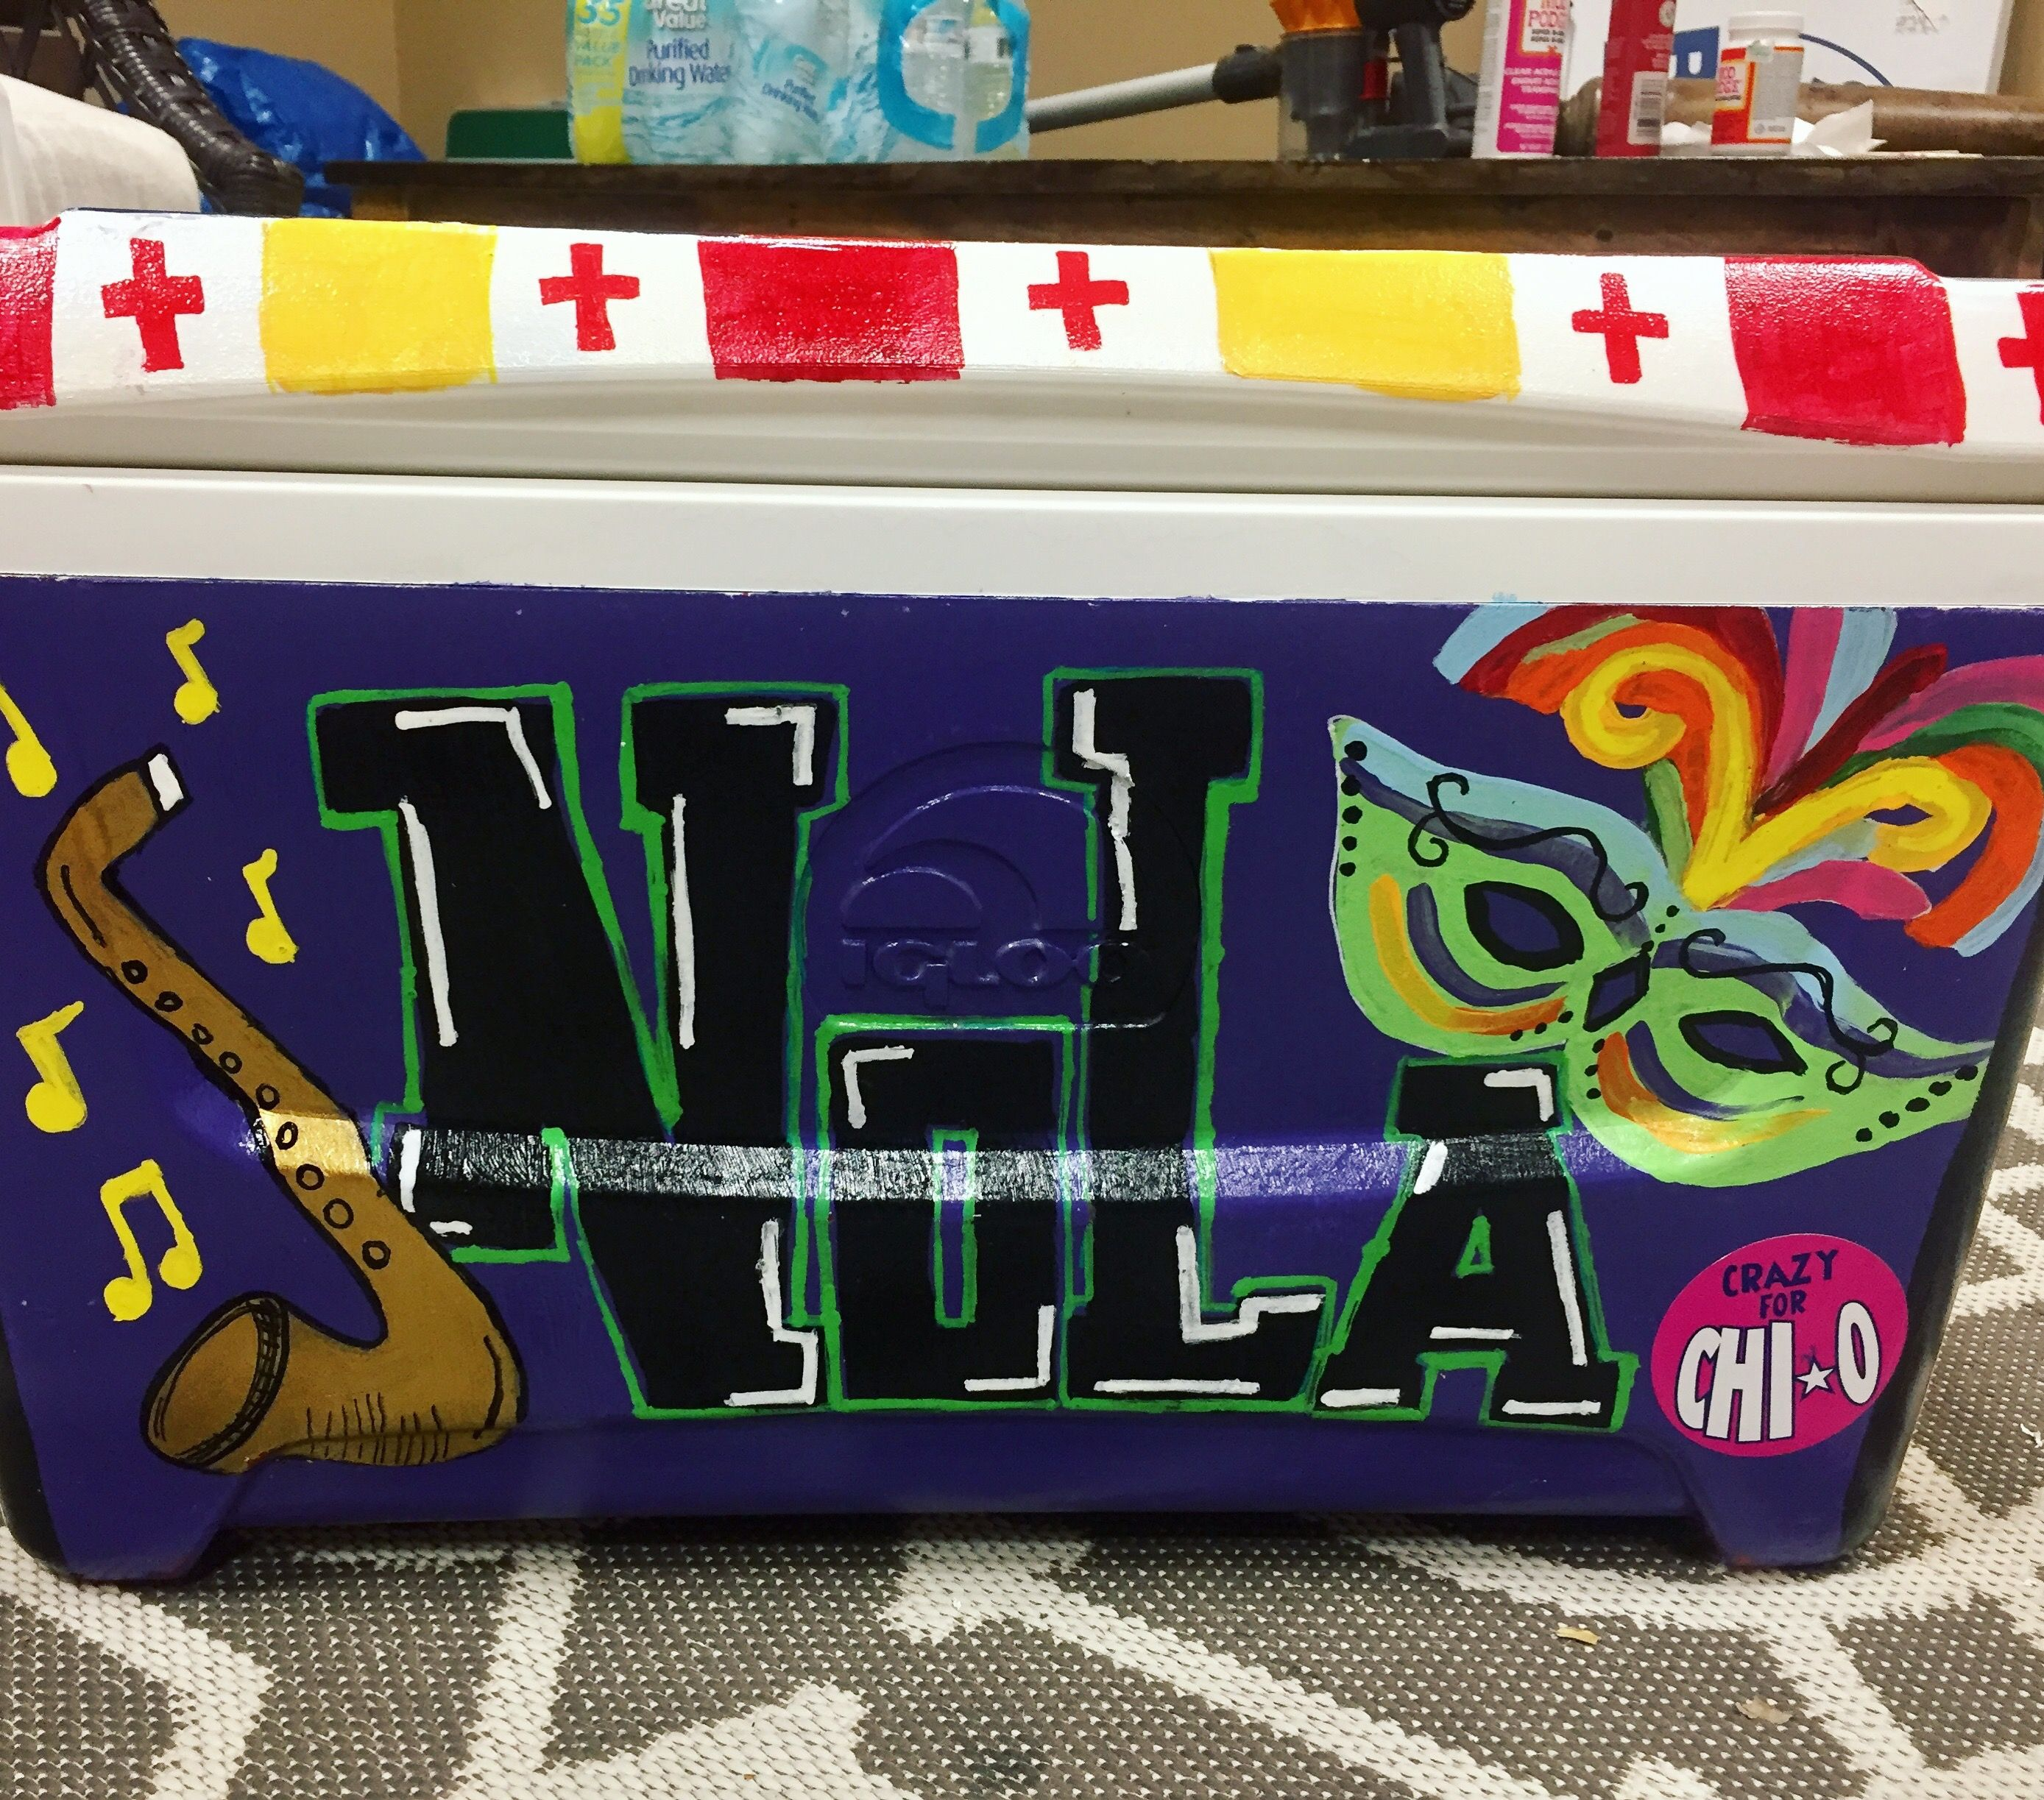 Sessel Nola New Orleans Painted Cooler Kappa Alpha Order Formal College